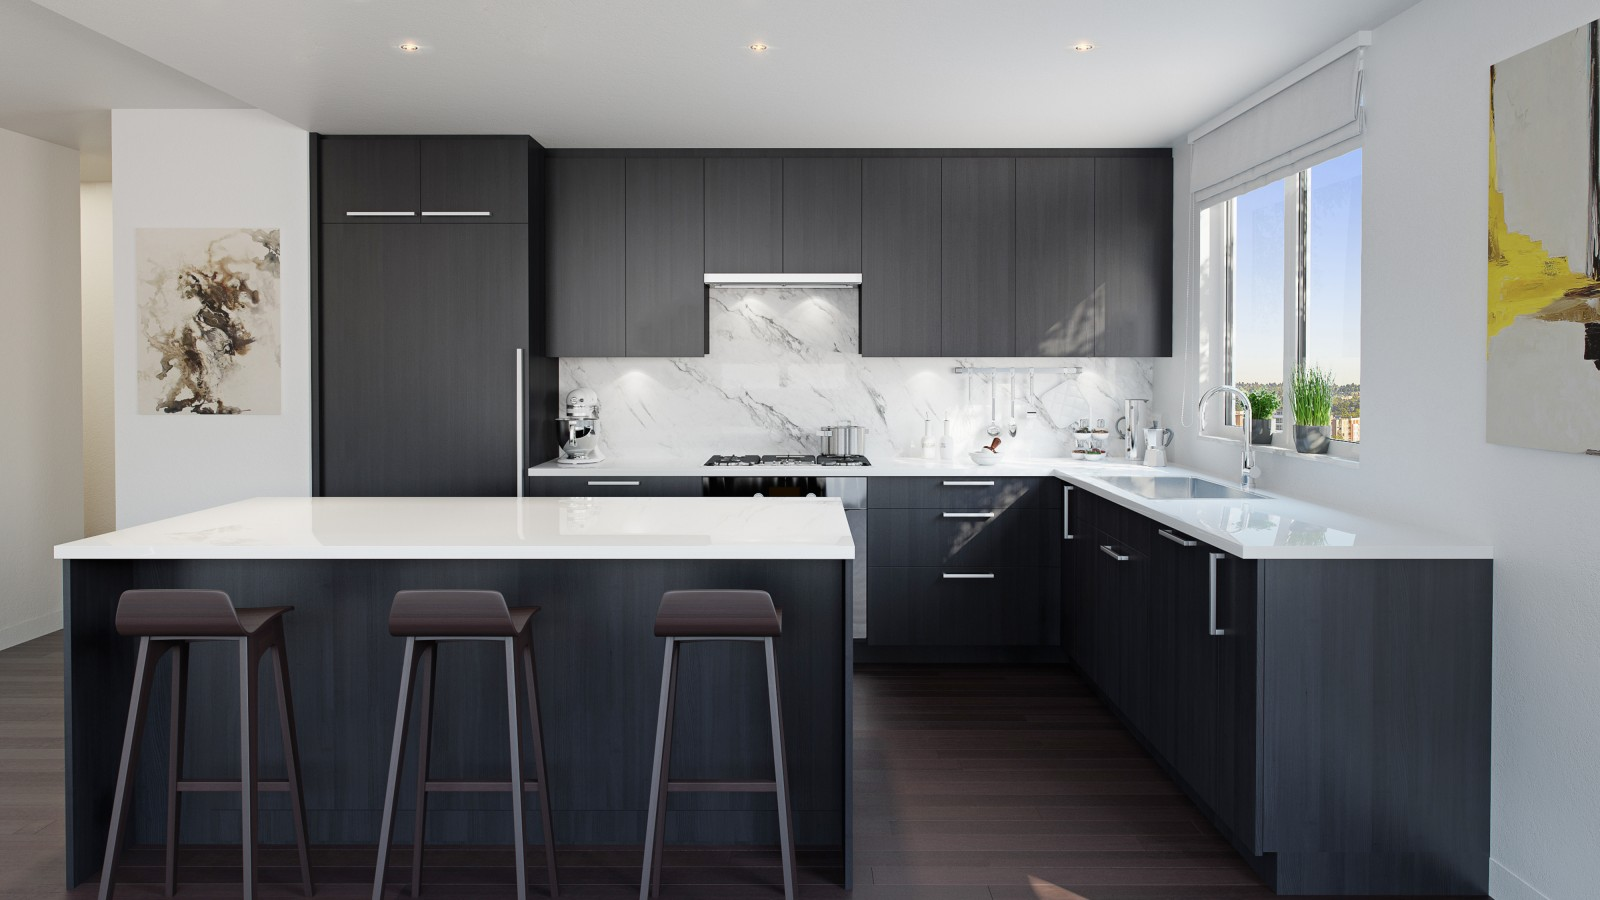 Benning House interiors Vancouver-1